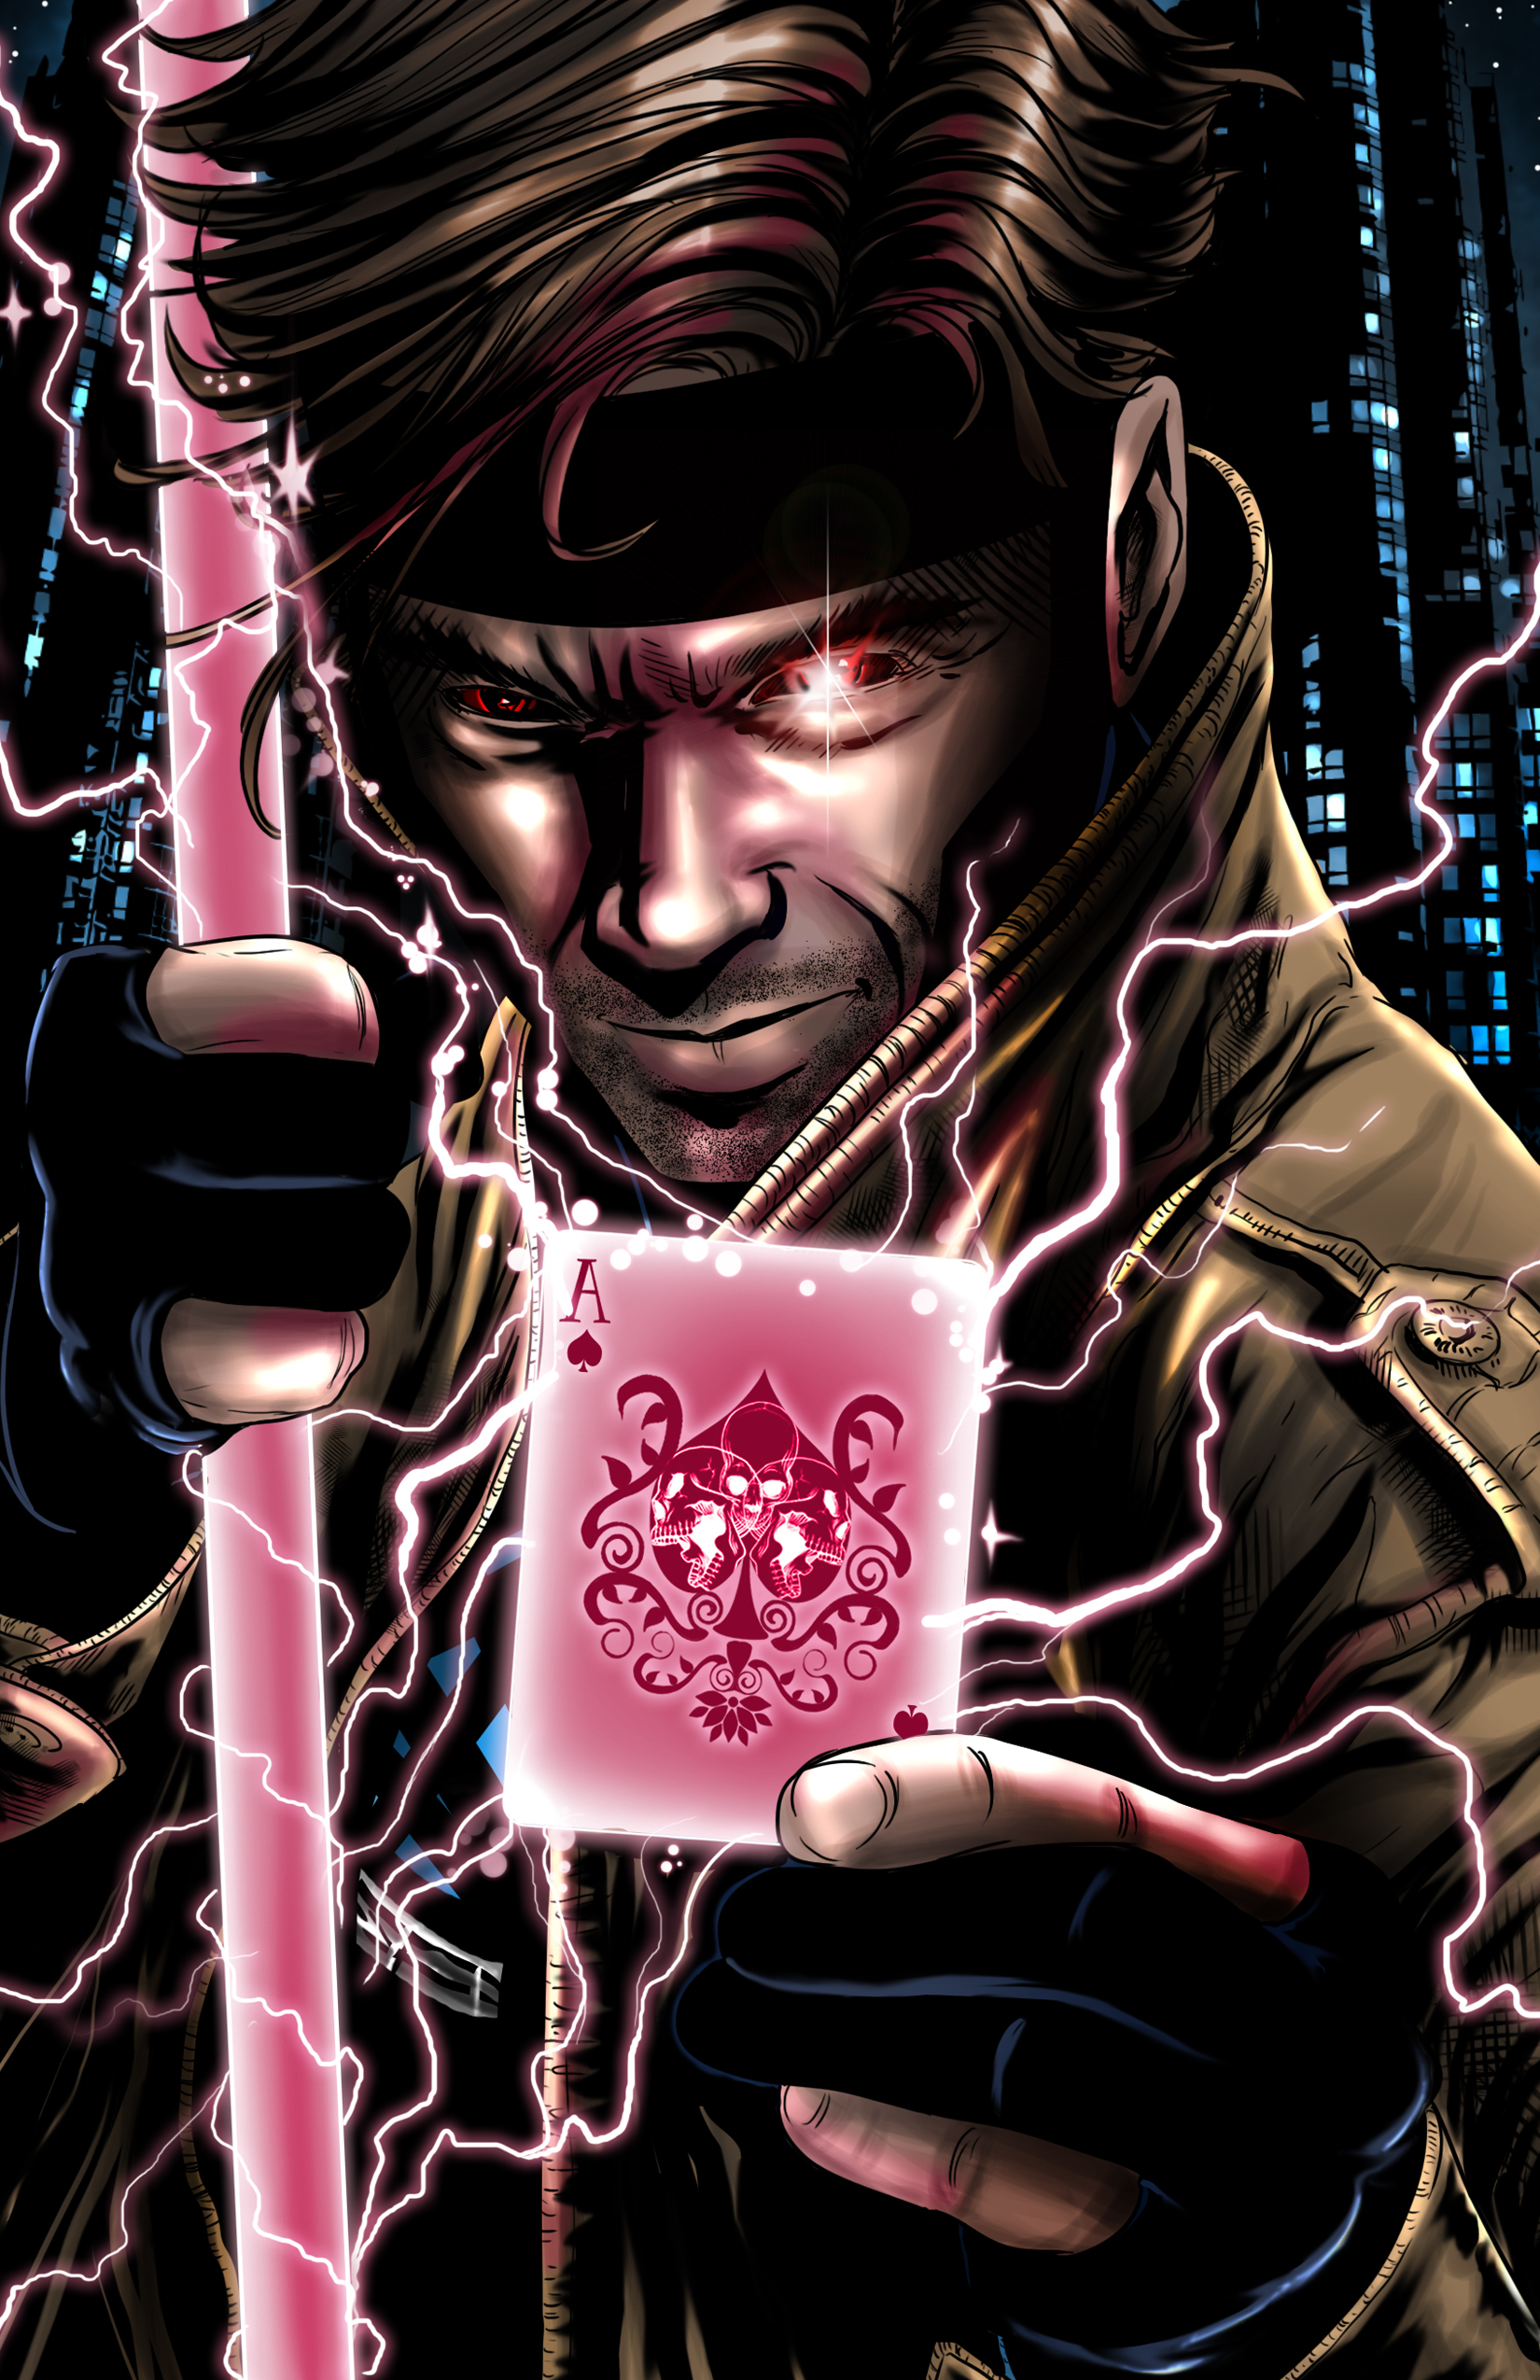 Gambit Wallpapers Comics Hq Gambit Pictures 4k Wallpapers 2019